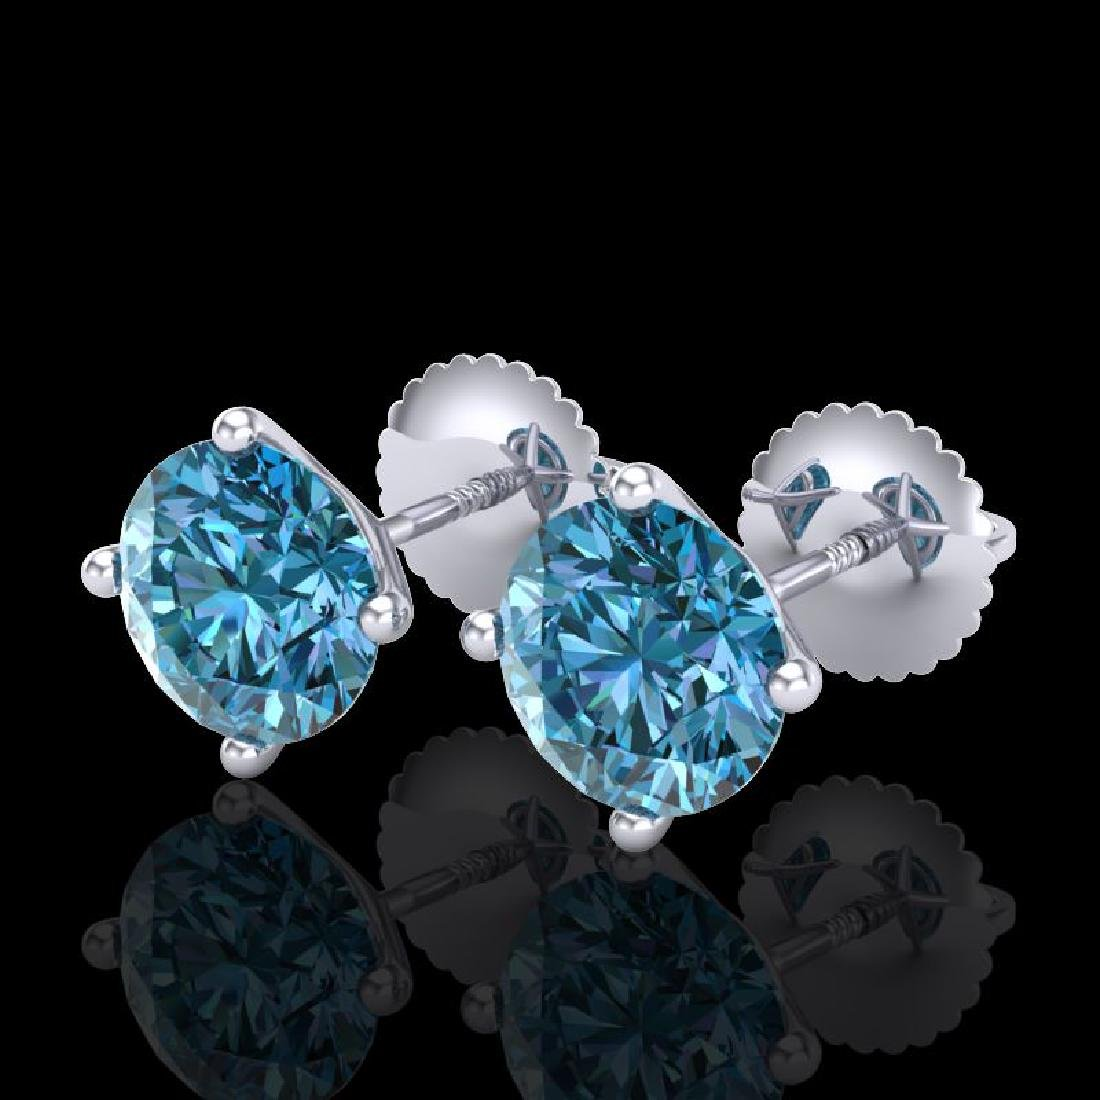 2.5 CTW Fancy Intense Blue Diamond Art Deco Stud